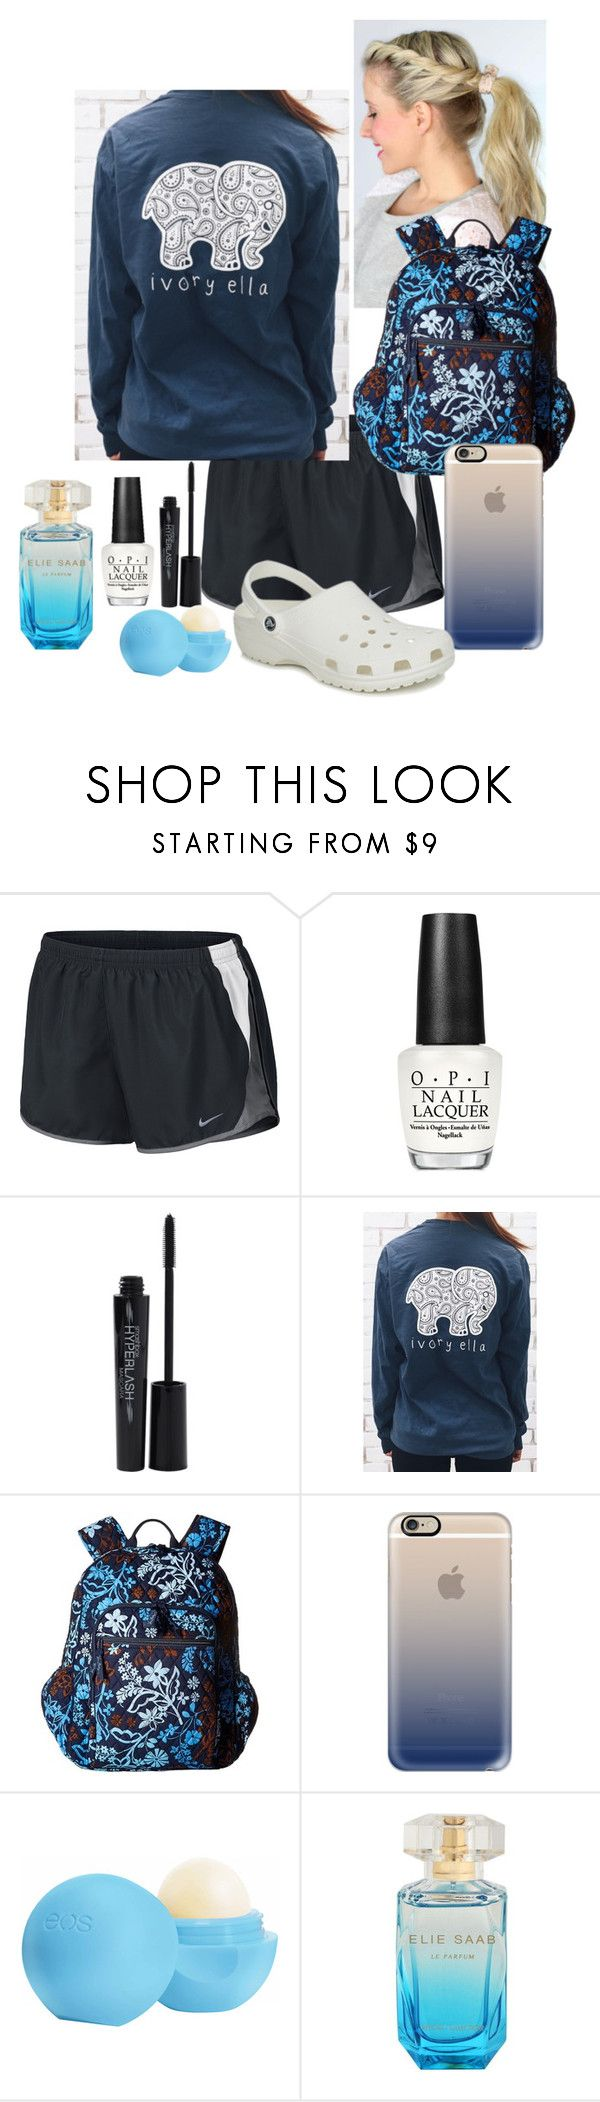 """""""Ivory Ella"""" by nknudson-04 on Polyvore featuring NIKE, OPI, Smashbox, Vera Bradley, Casetify, Eos and Crocs"""